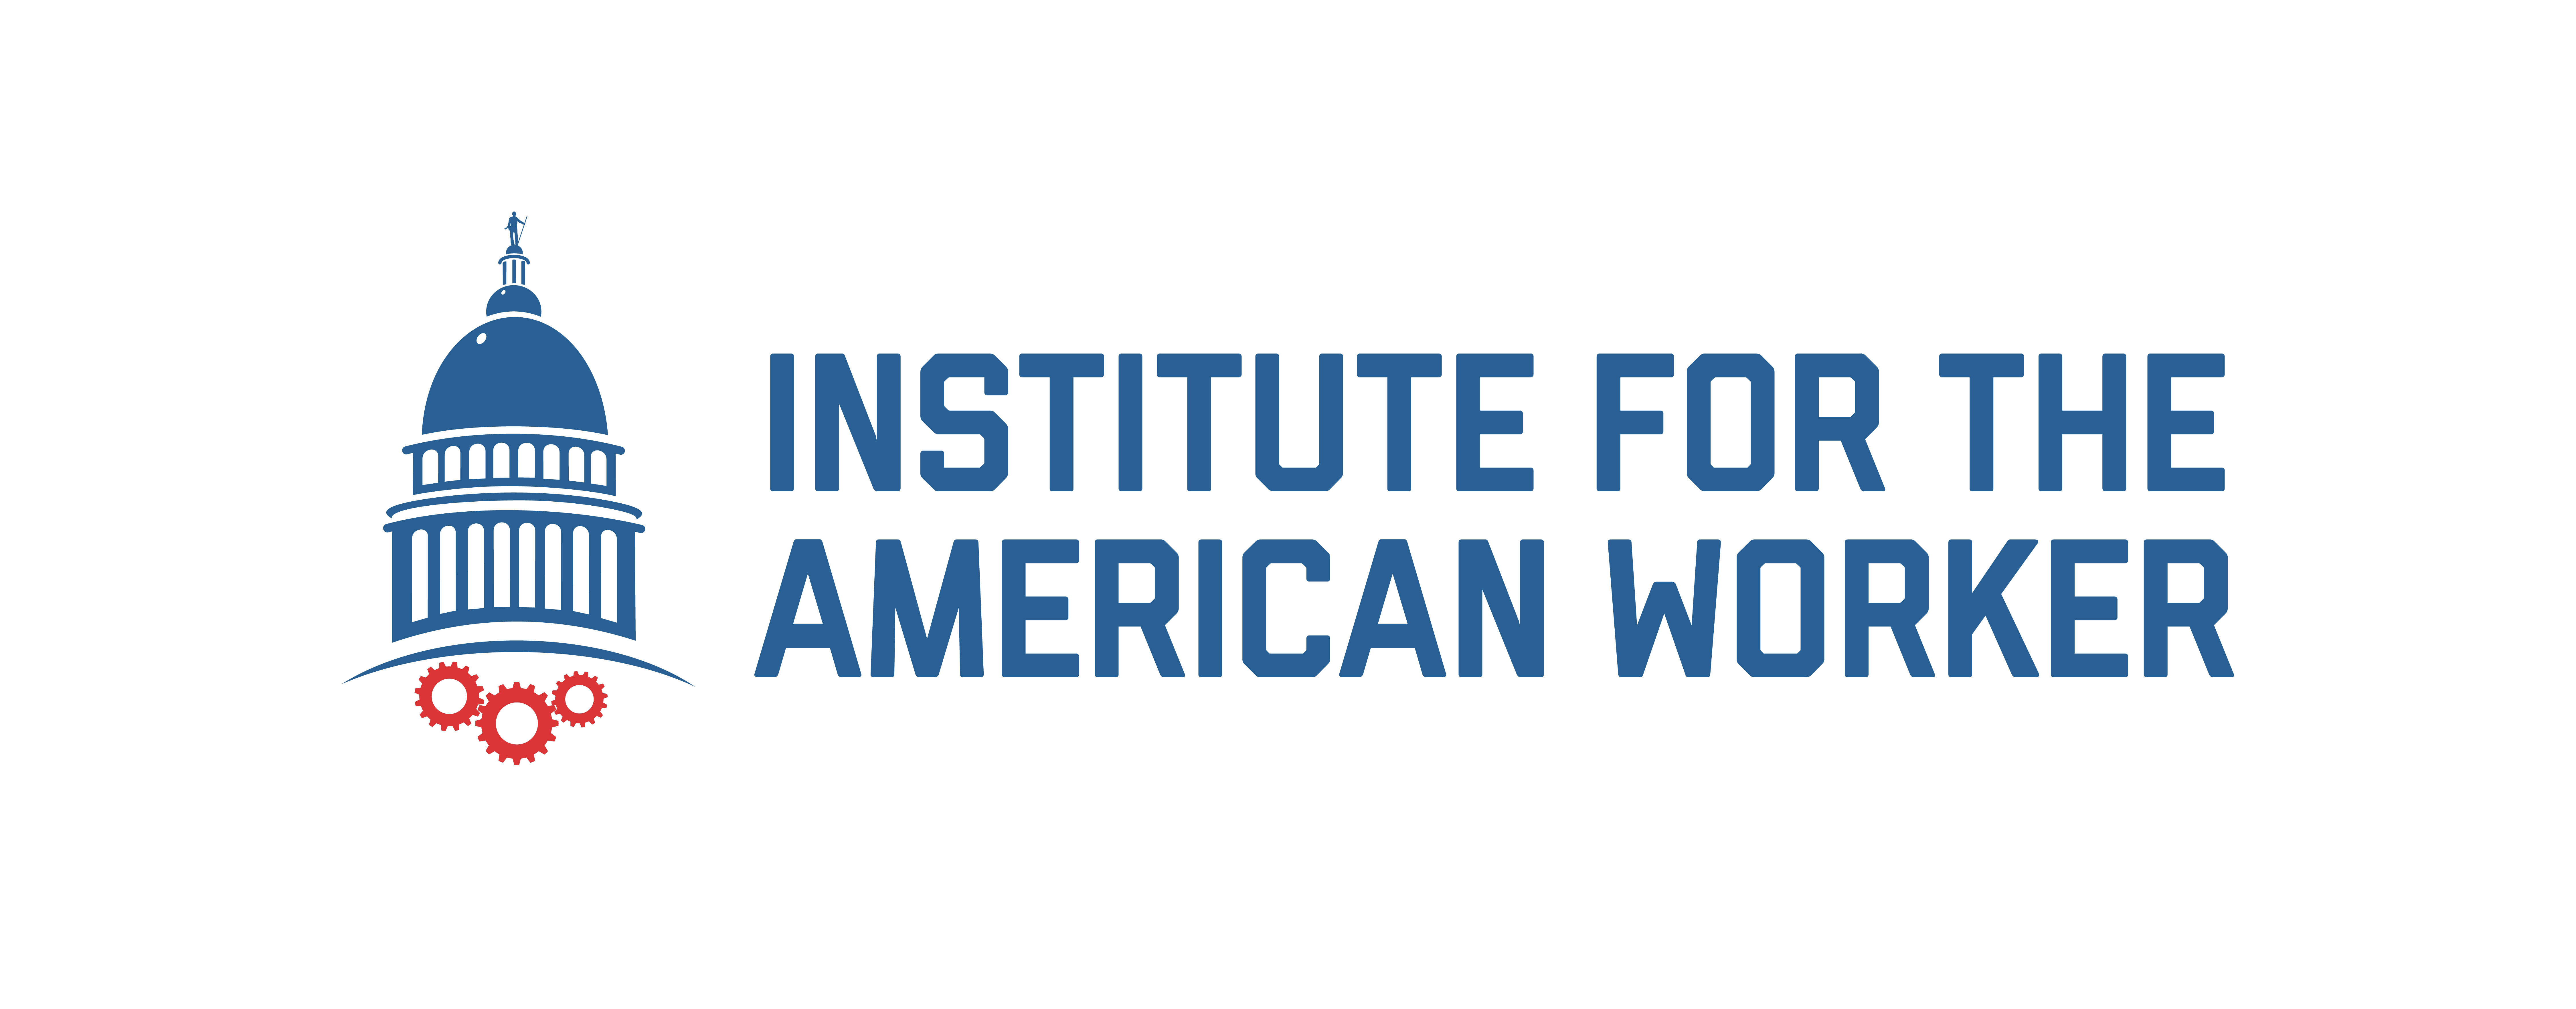 The Institute for the American Worker